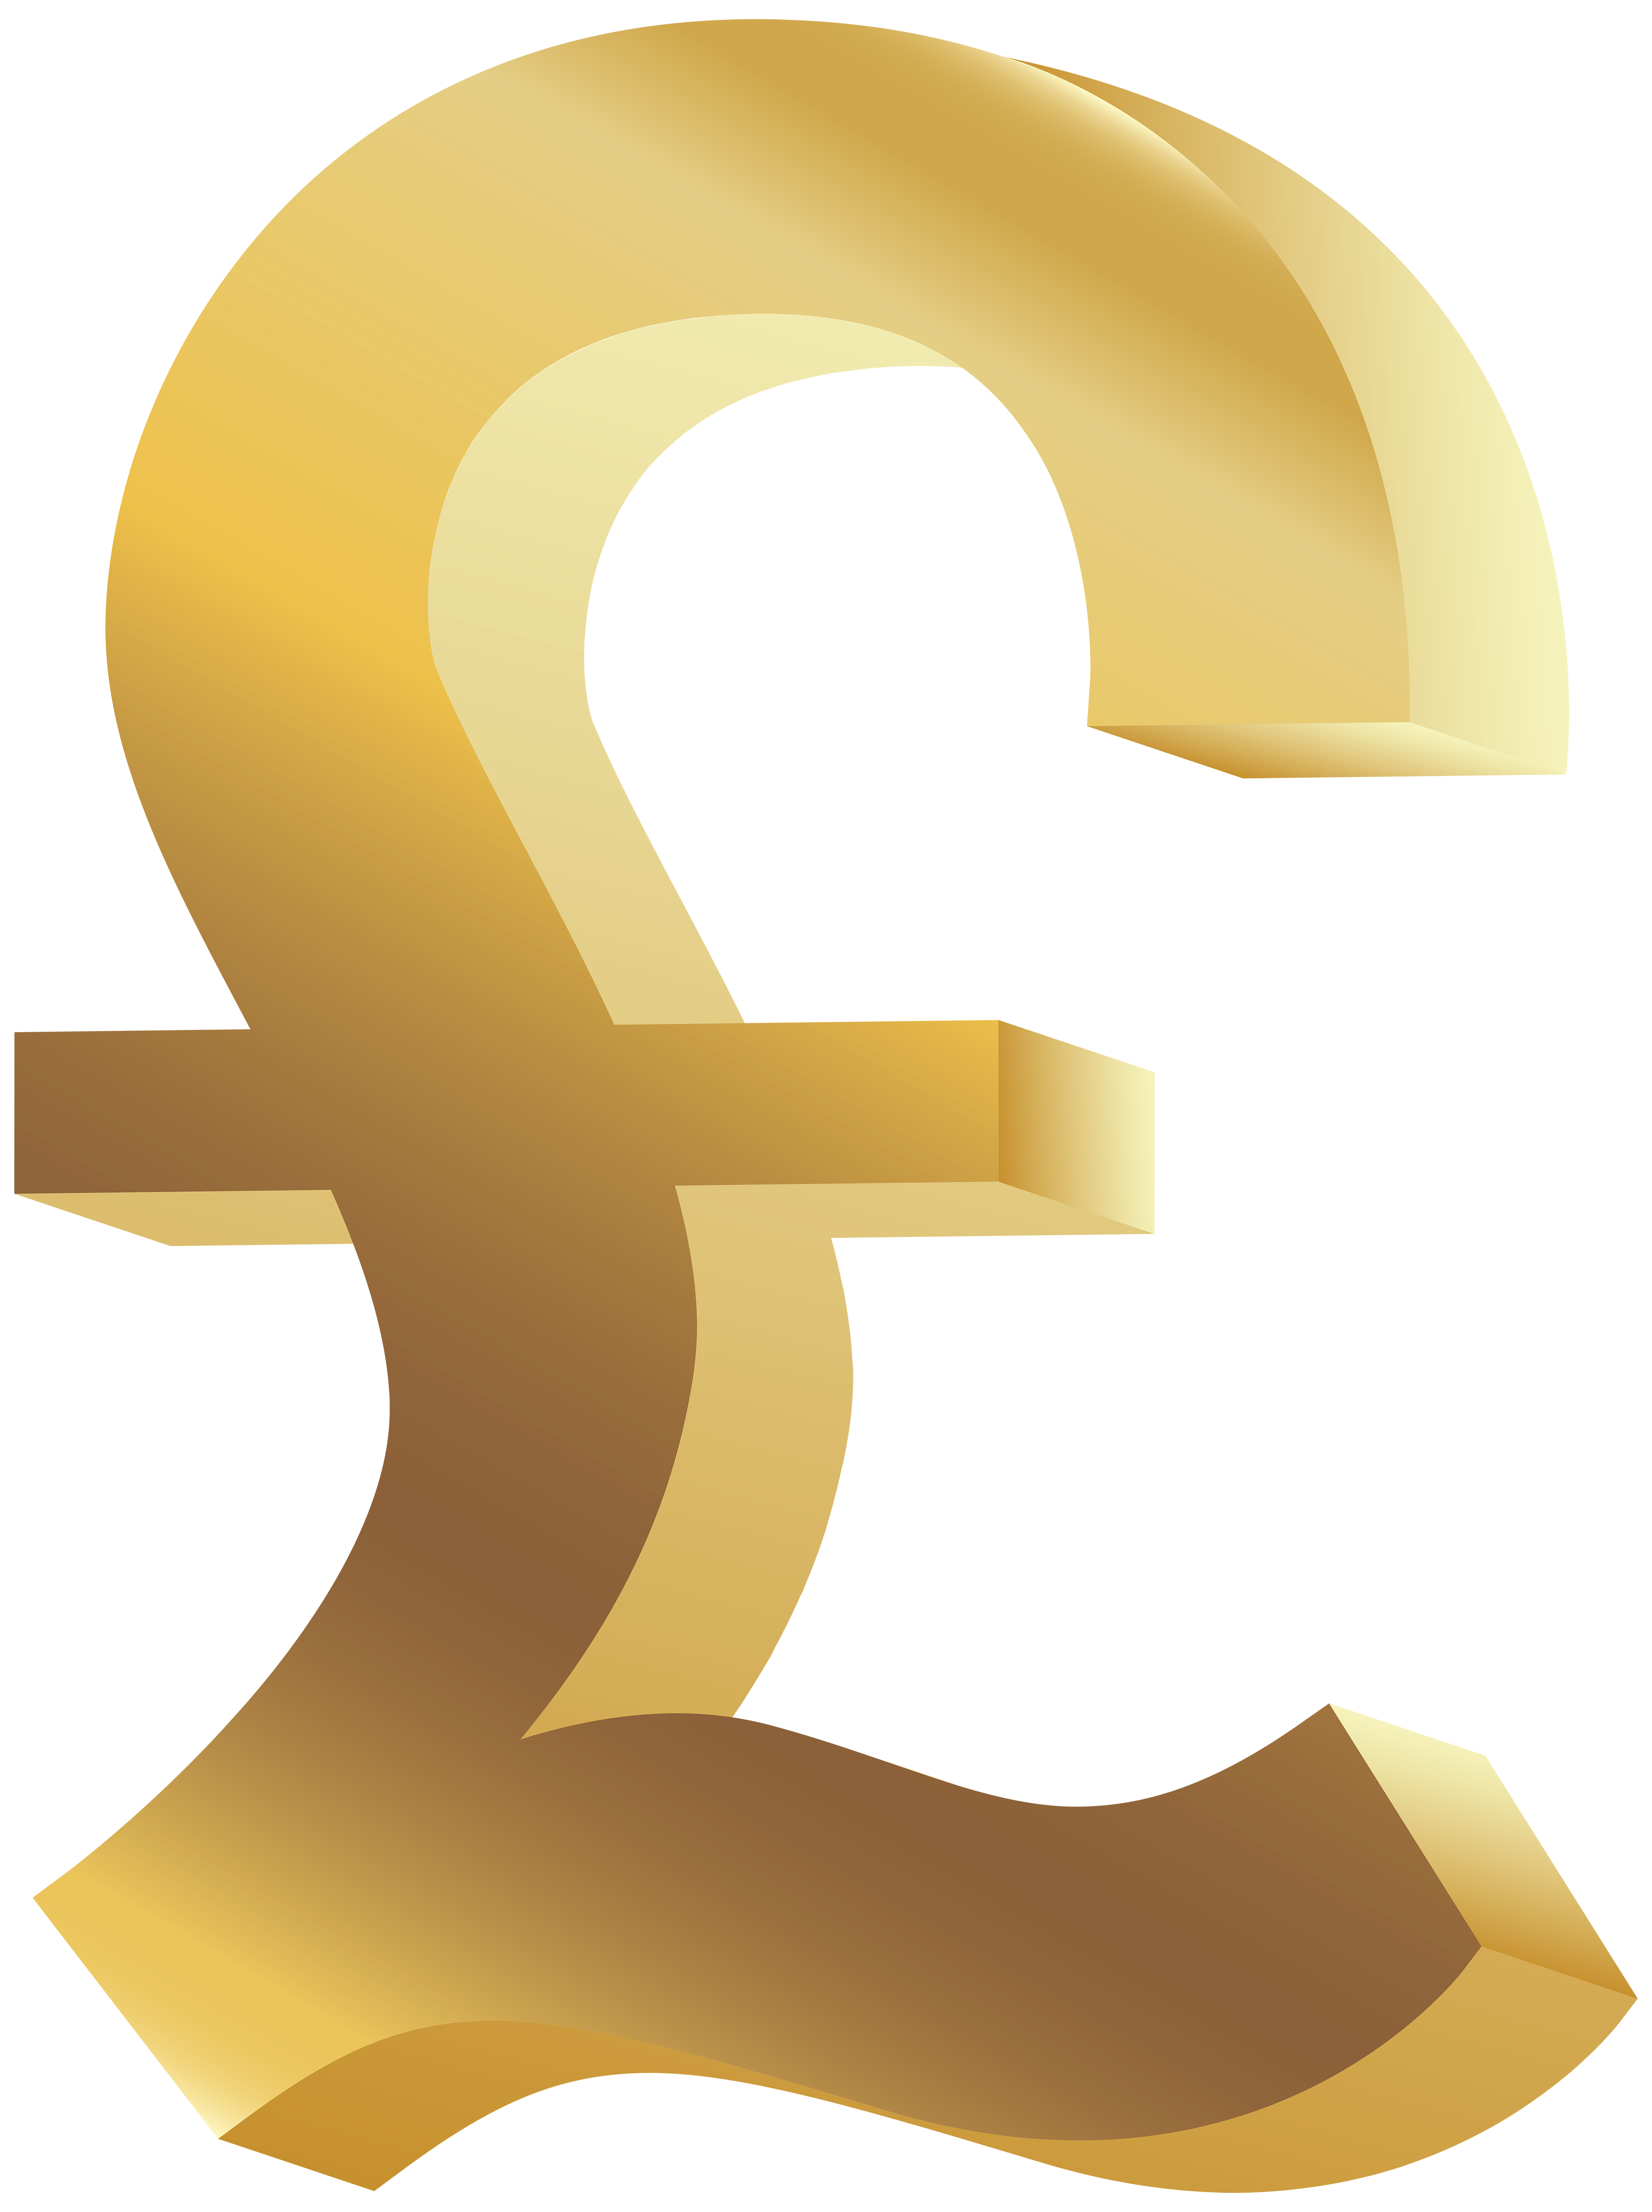 Pound symbol png clip. Clipart earth money